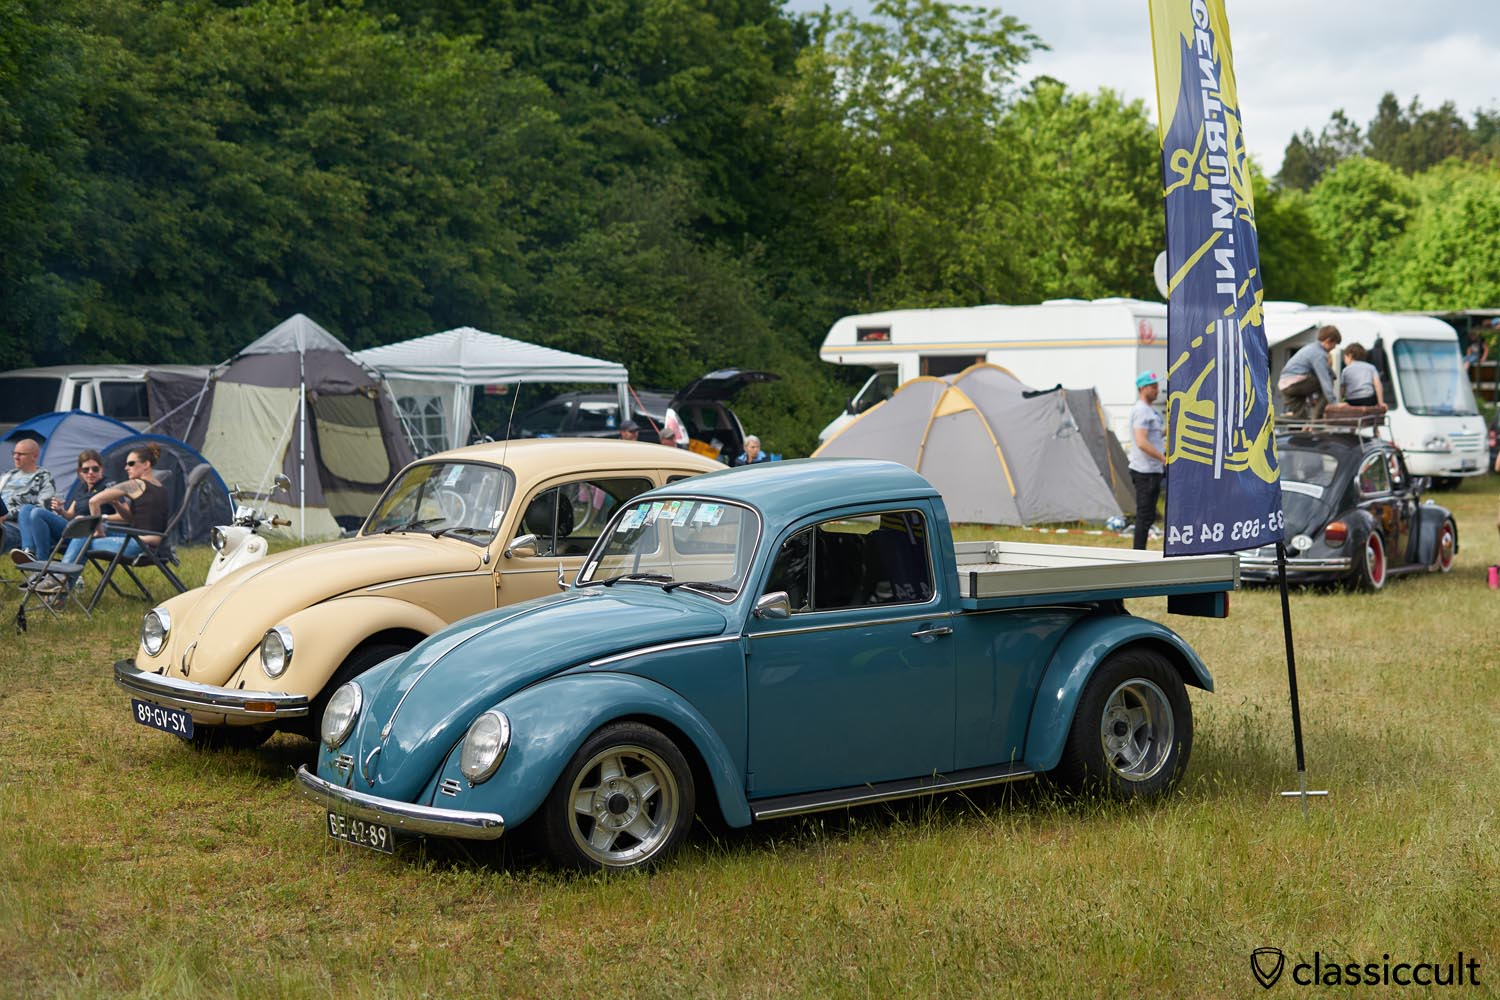 20 Air Cooled Show Geeste 2019 Classiccult